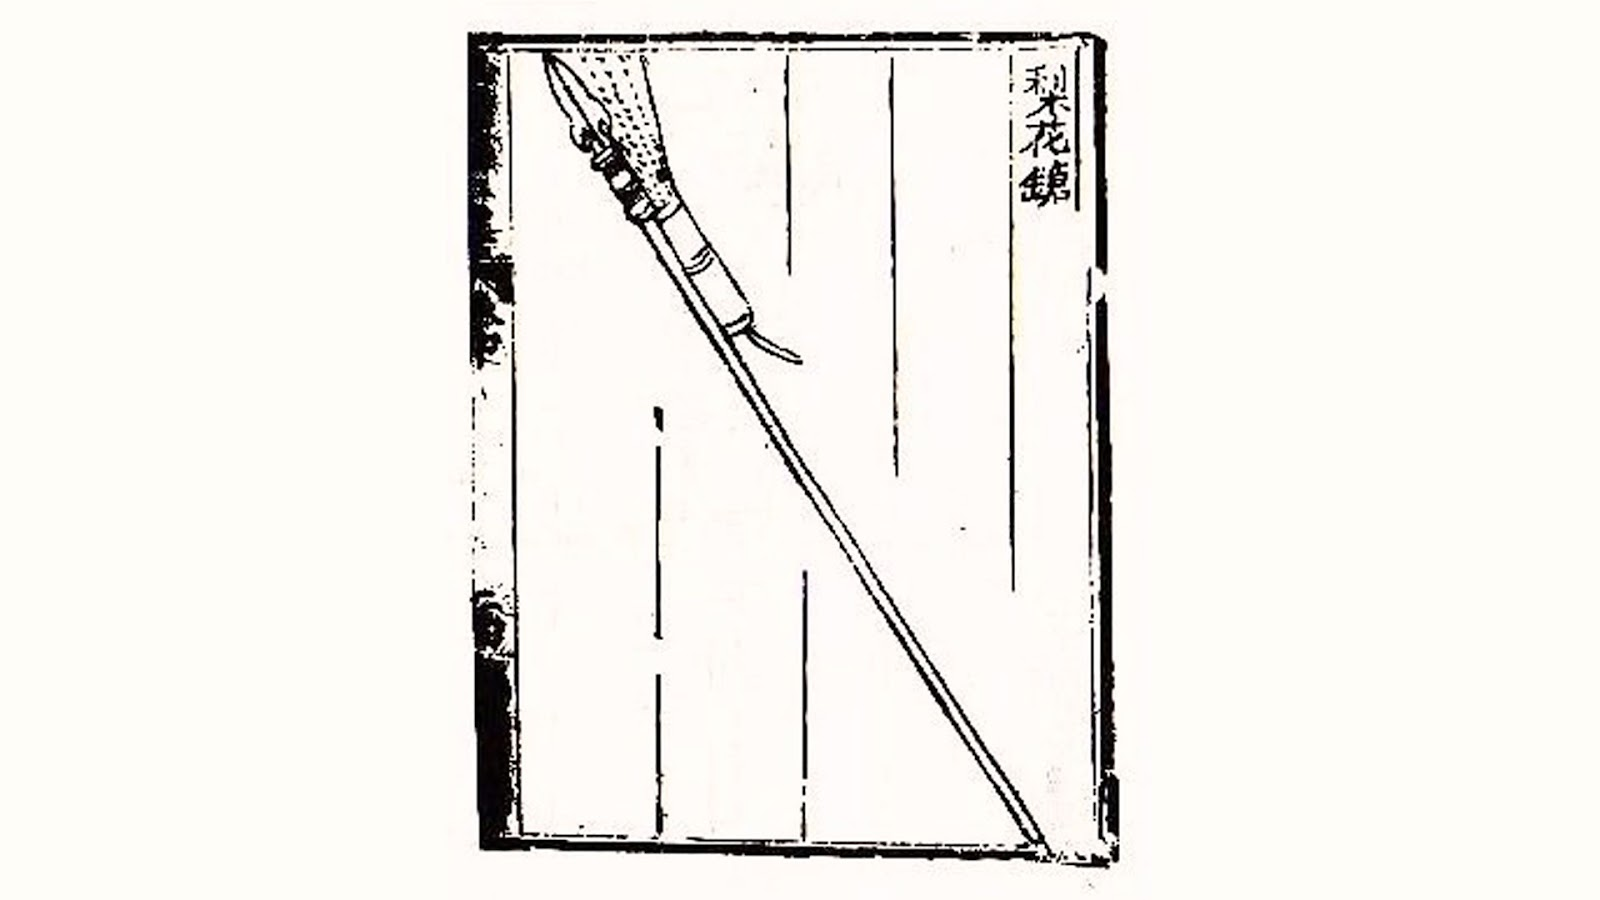 drawing of a Chinese fire lance